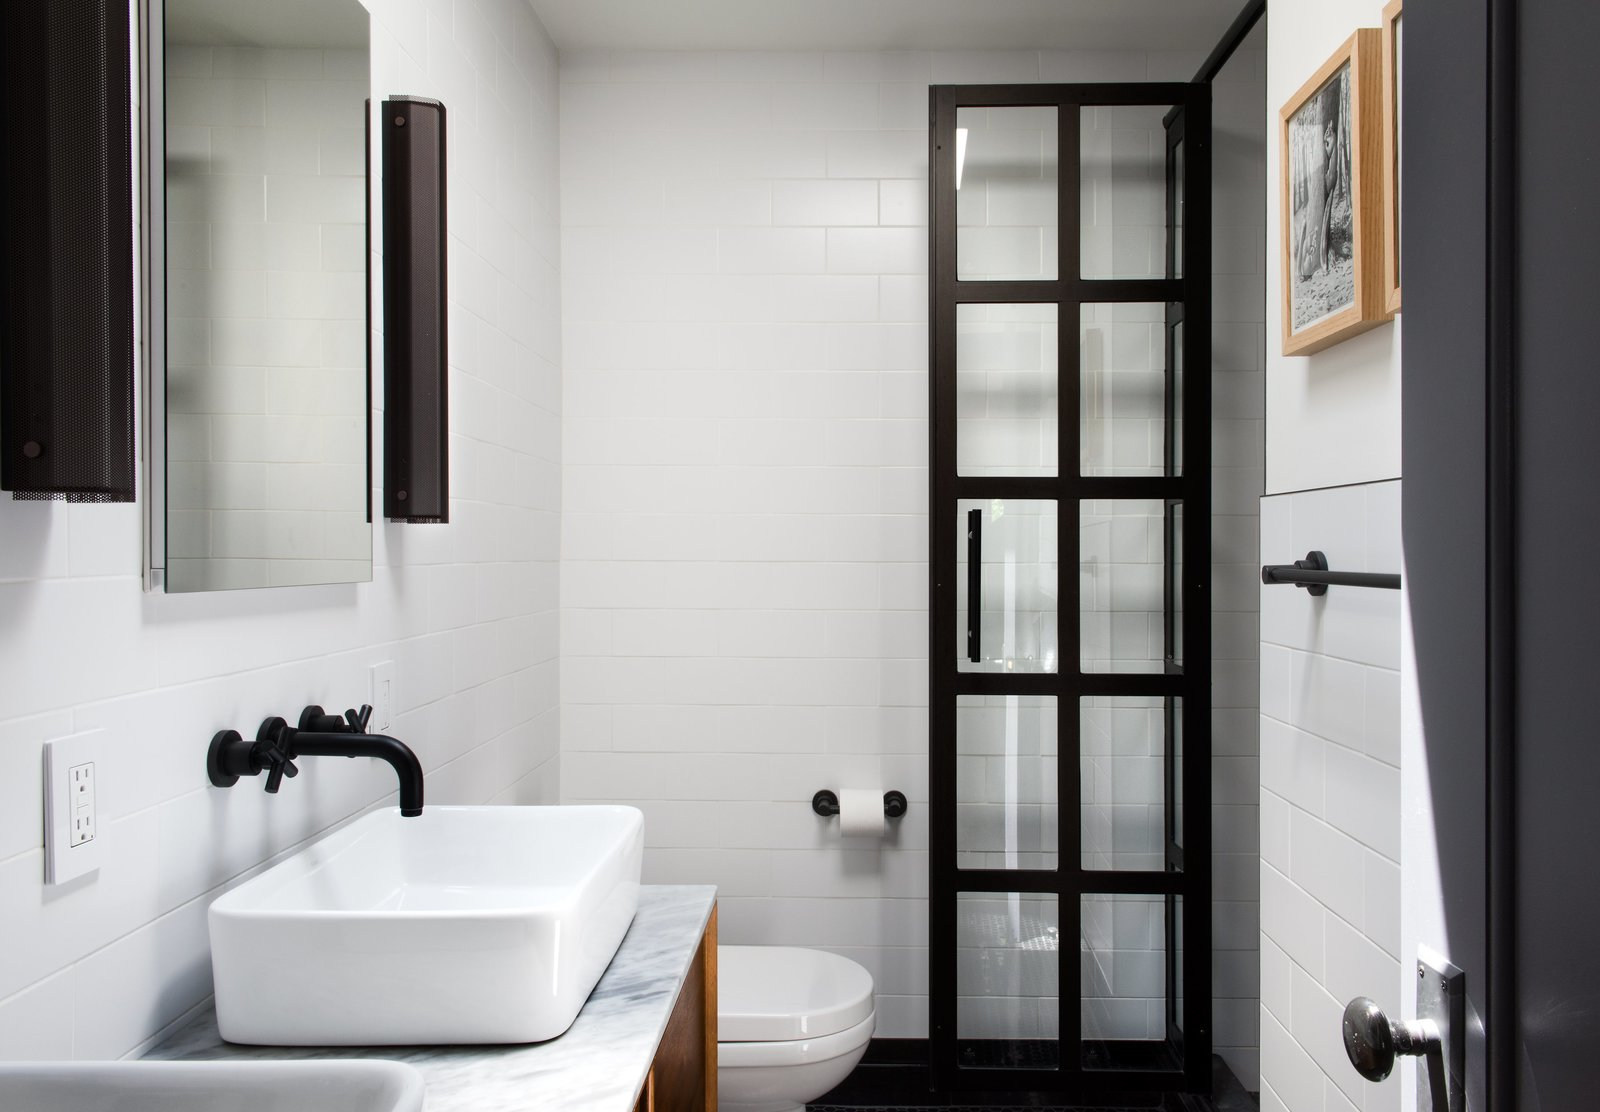 An austere palette defines the master bathroom, with subway tiles from Classic Tile New York, matte-black fixtures by California Faucets, and black perforated-aluminum Branch sconces by RBW. Tagged: Bath Room, Marble Counter, Vessel Sink, and Subway Tile Wall.  Photo 11 of 14 in Modern Becomes Eclectic in This Renovated Brooklyn Townhouse